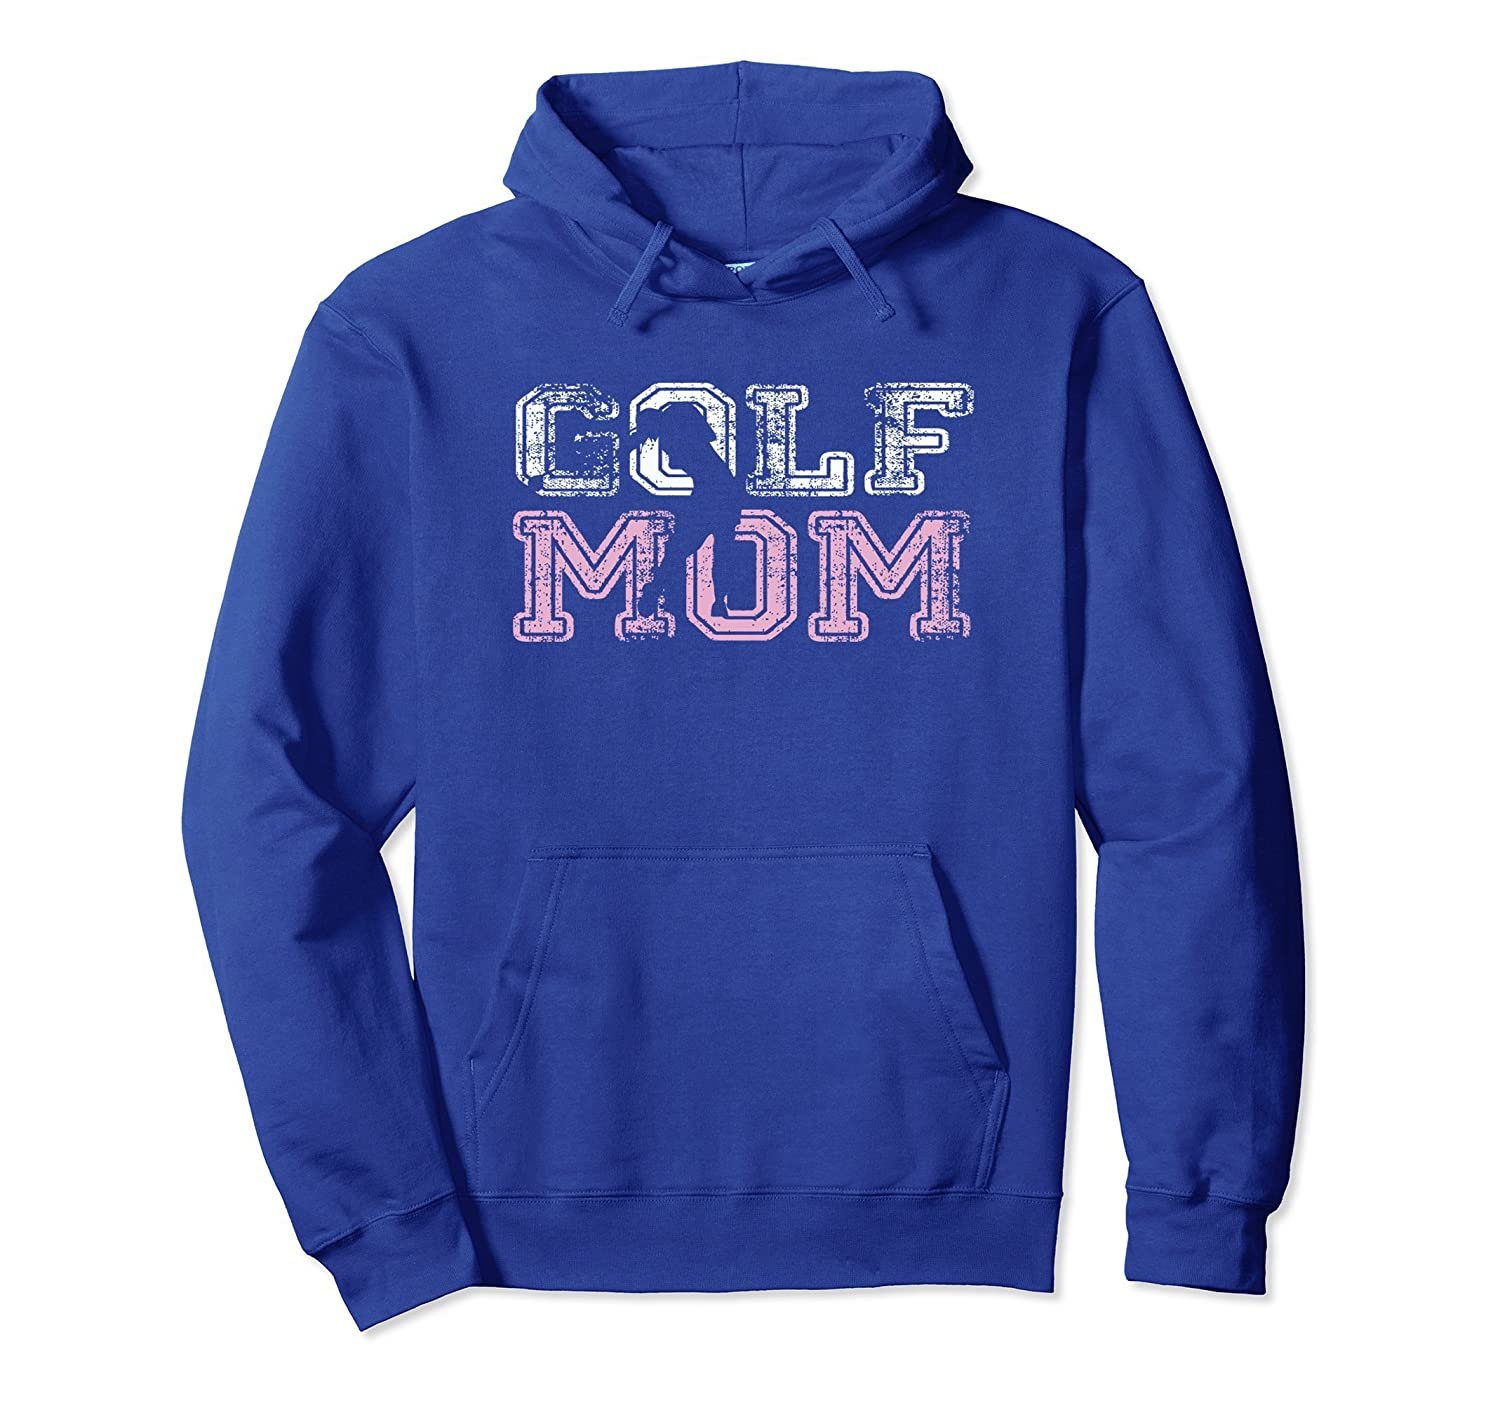 Womens womens golf mom pullover hoodie-TH